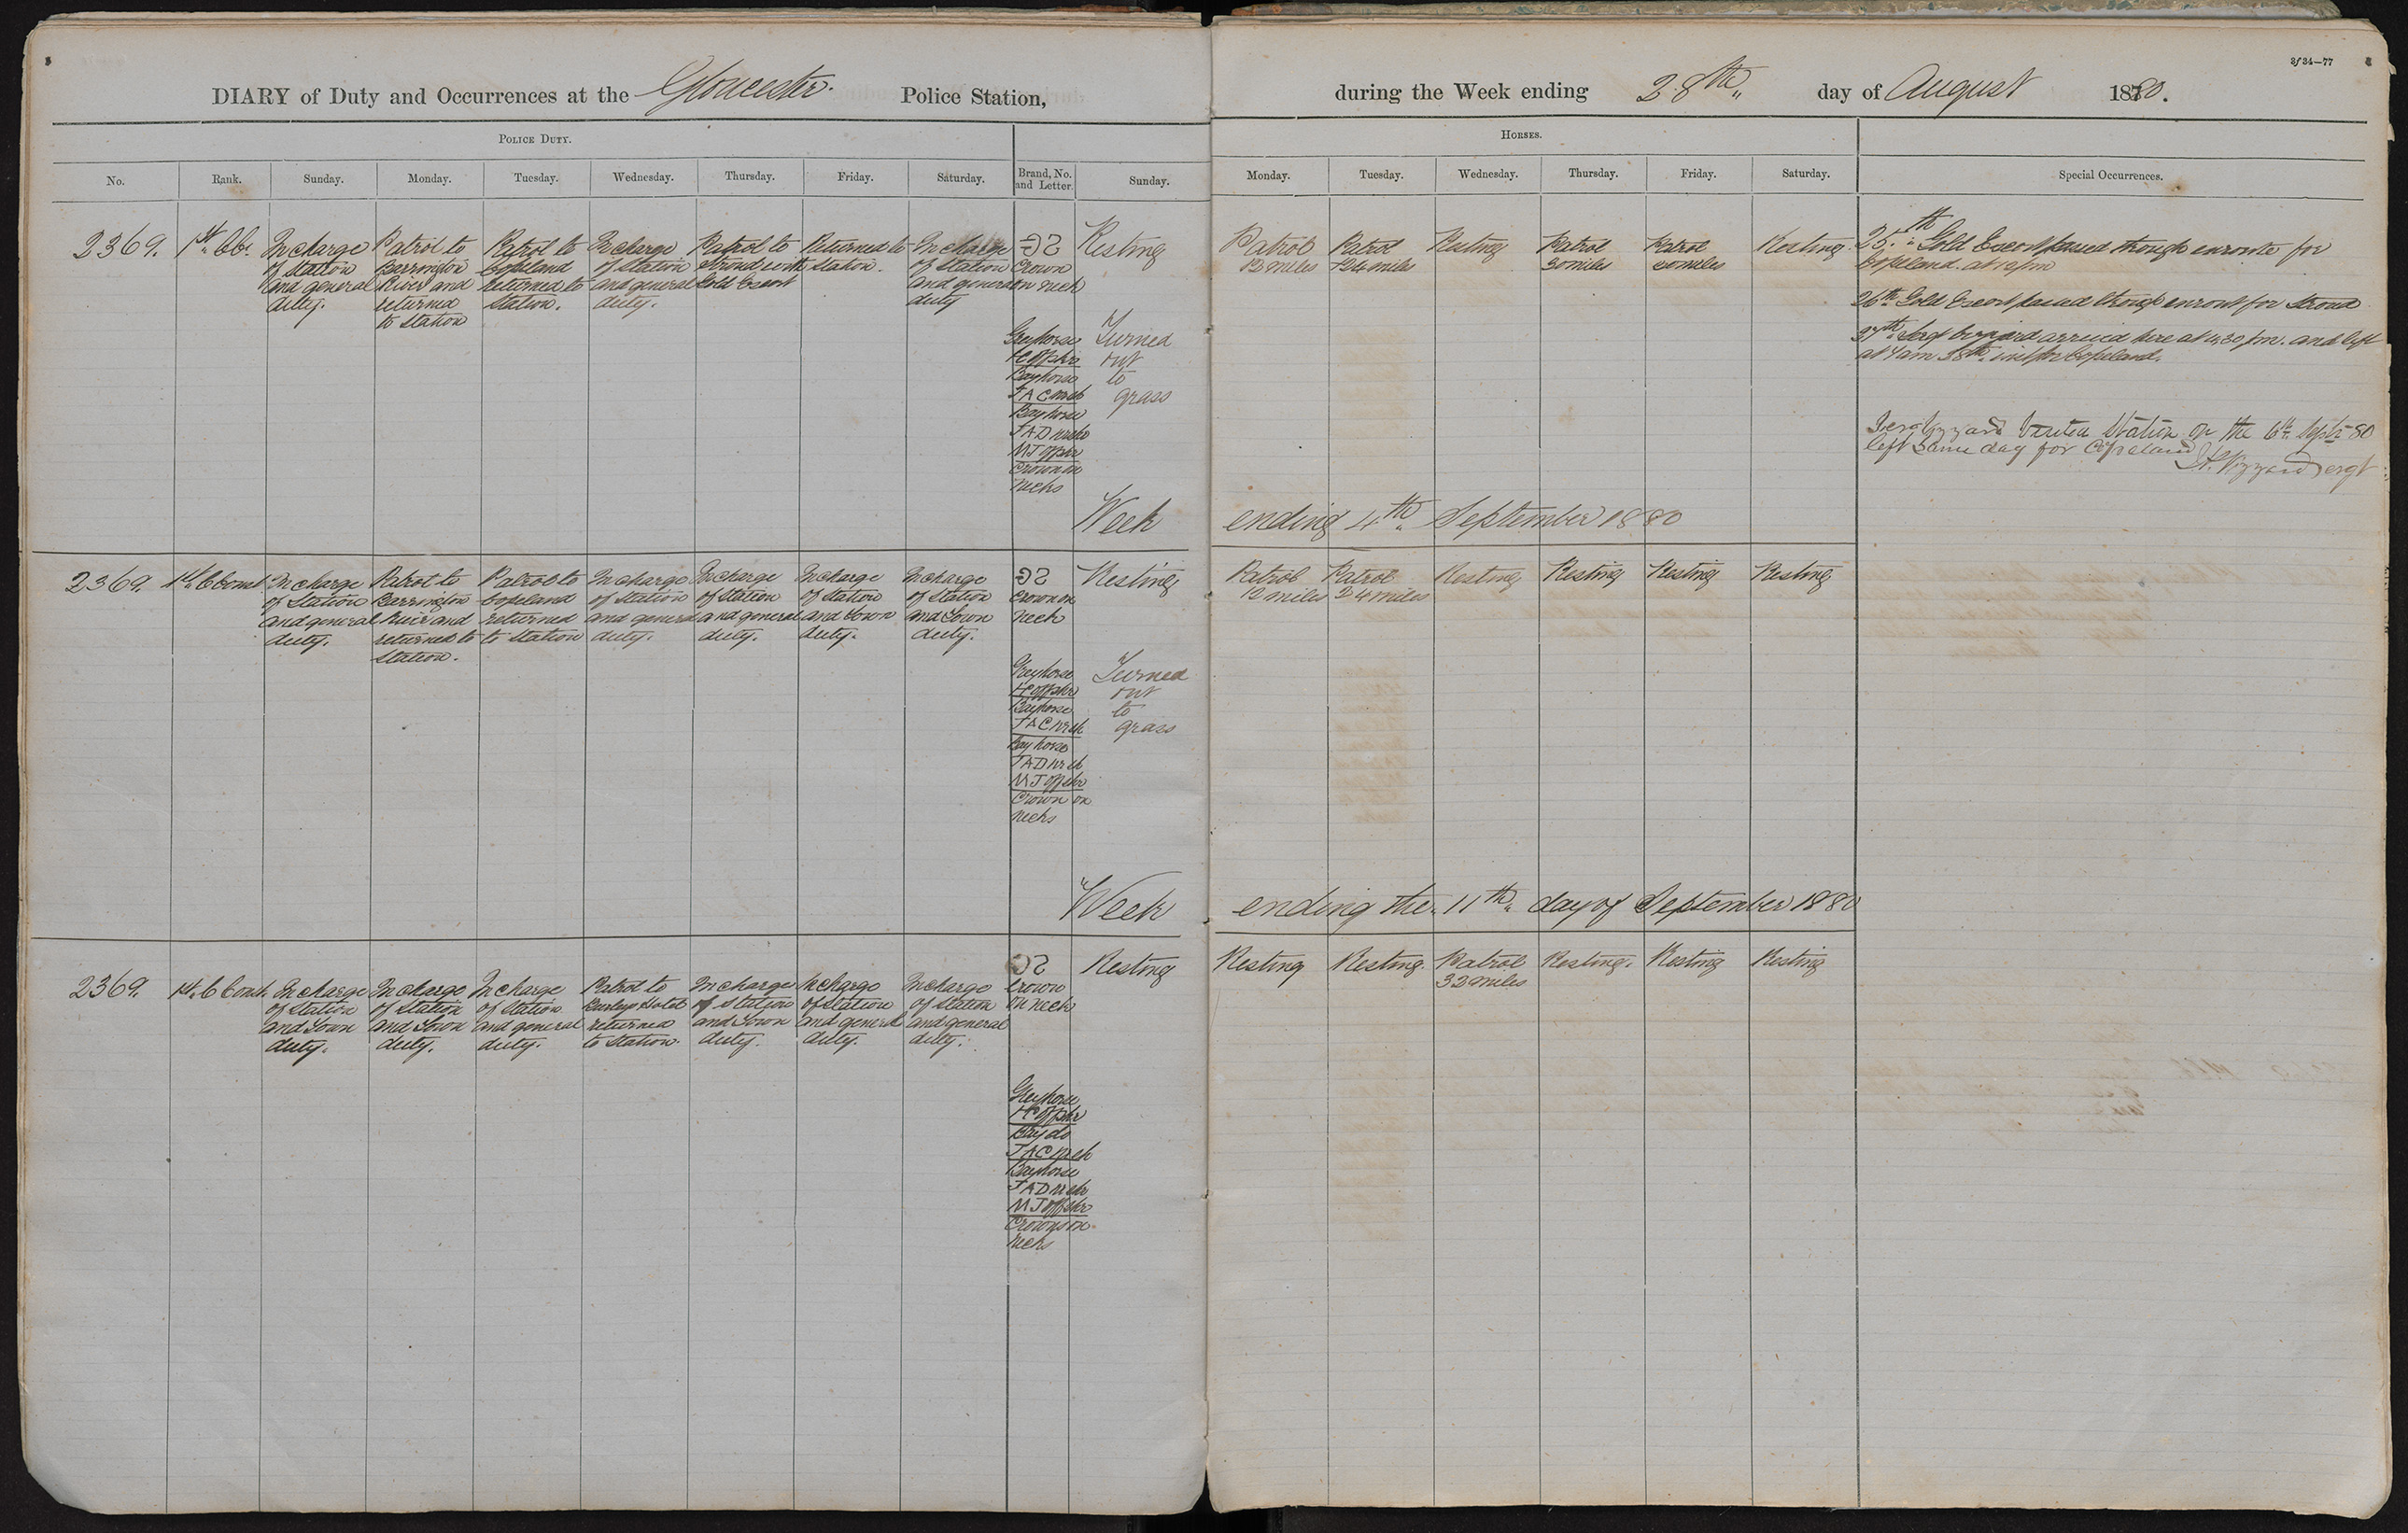 Diary of duty and occurrences at the Gloucester Police Station during the week ending the 28th day of August 1880